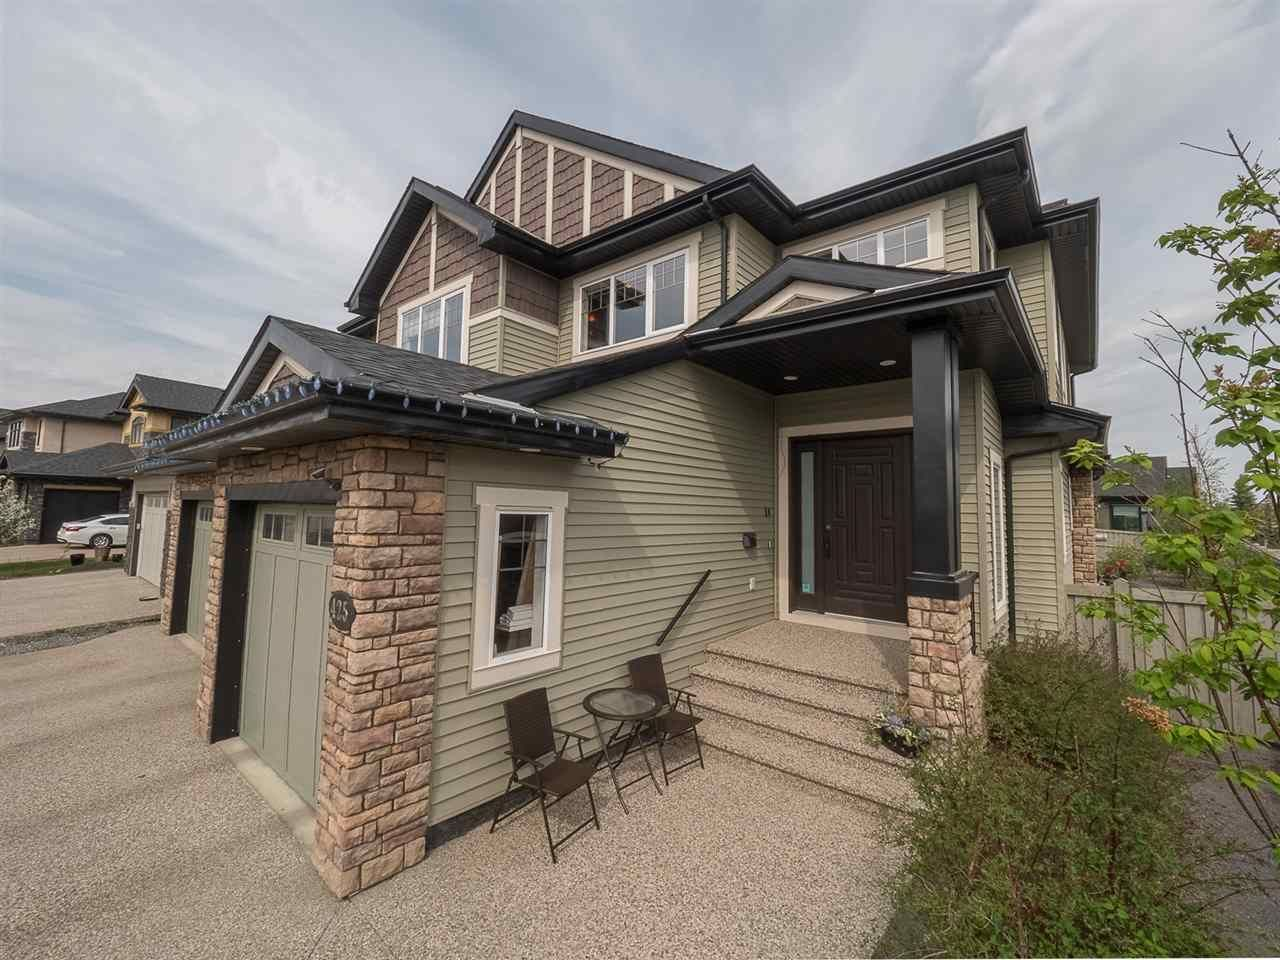 Main Photo: 425 Windermere Road in Edmonton: Zone 56 House for sale : MLS®# E4225658